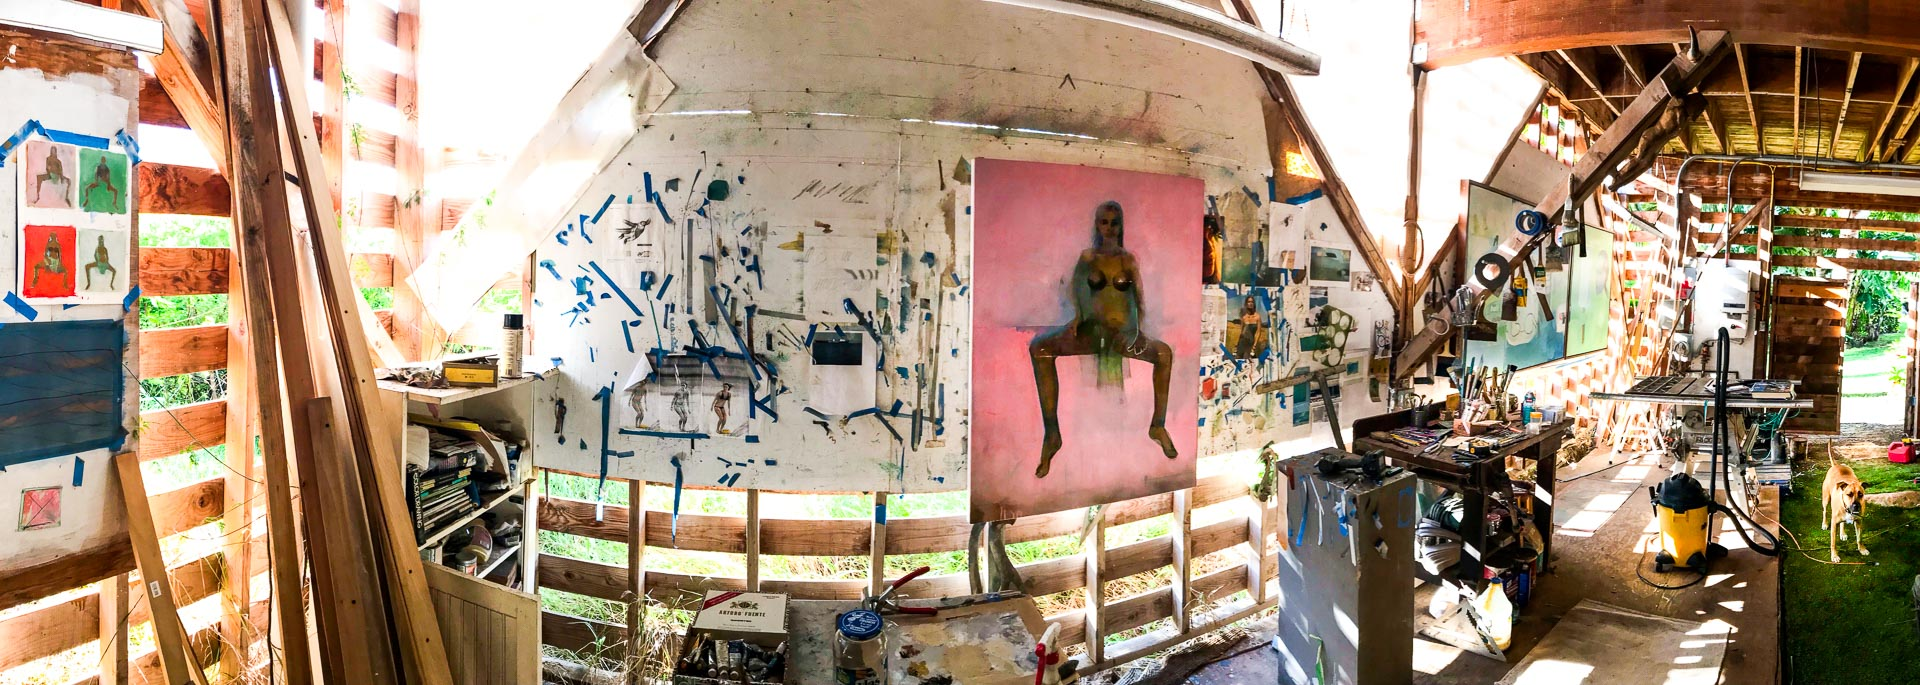 Larry-Berko-Art-Studio-Maui-5